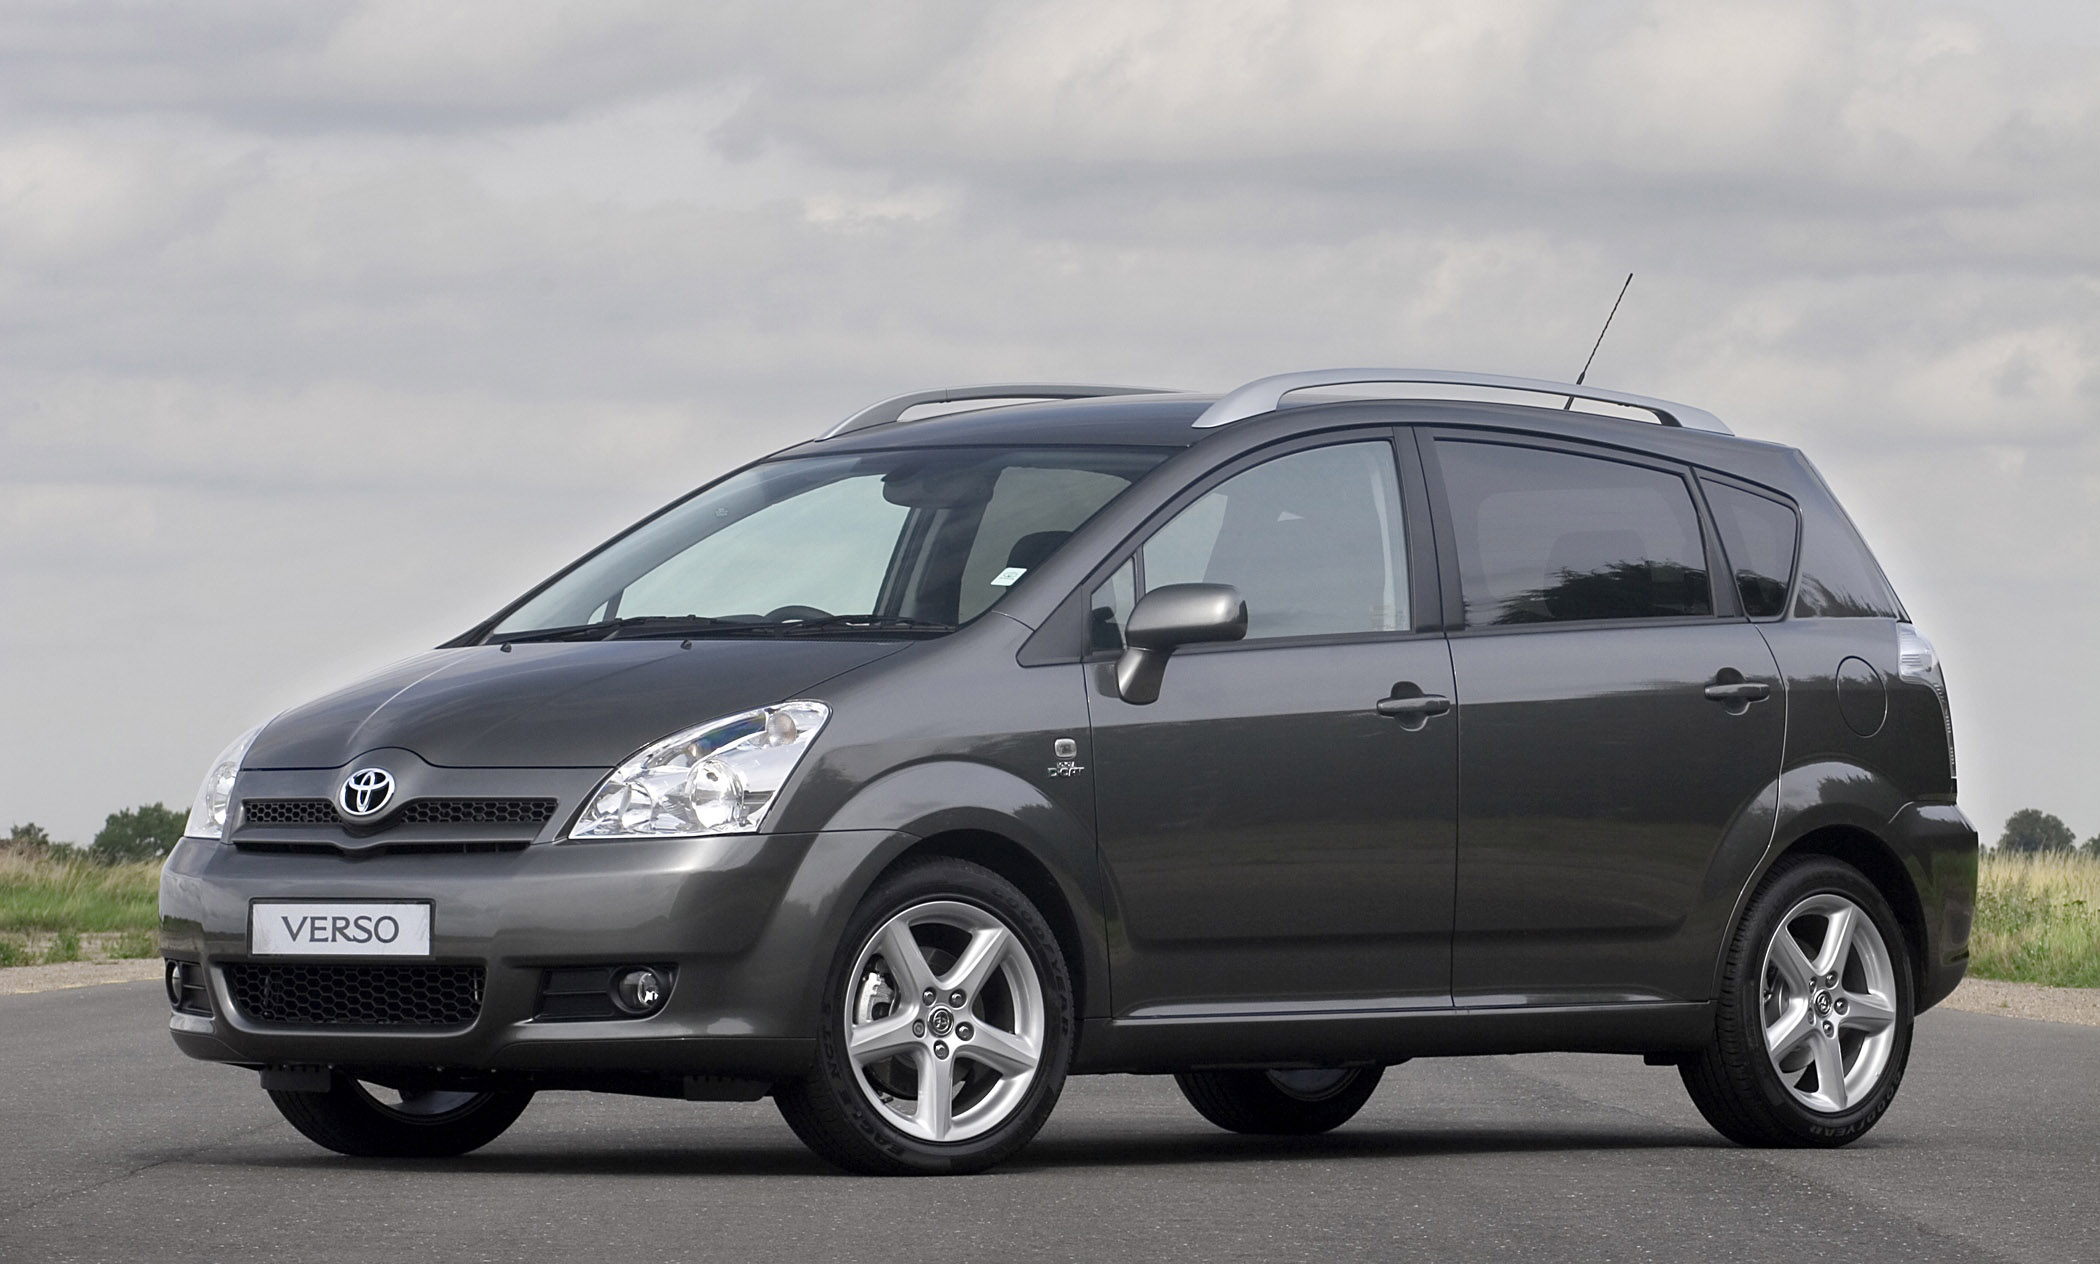 2005 Toyota Verso D 4D Picture 77819